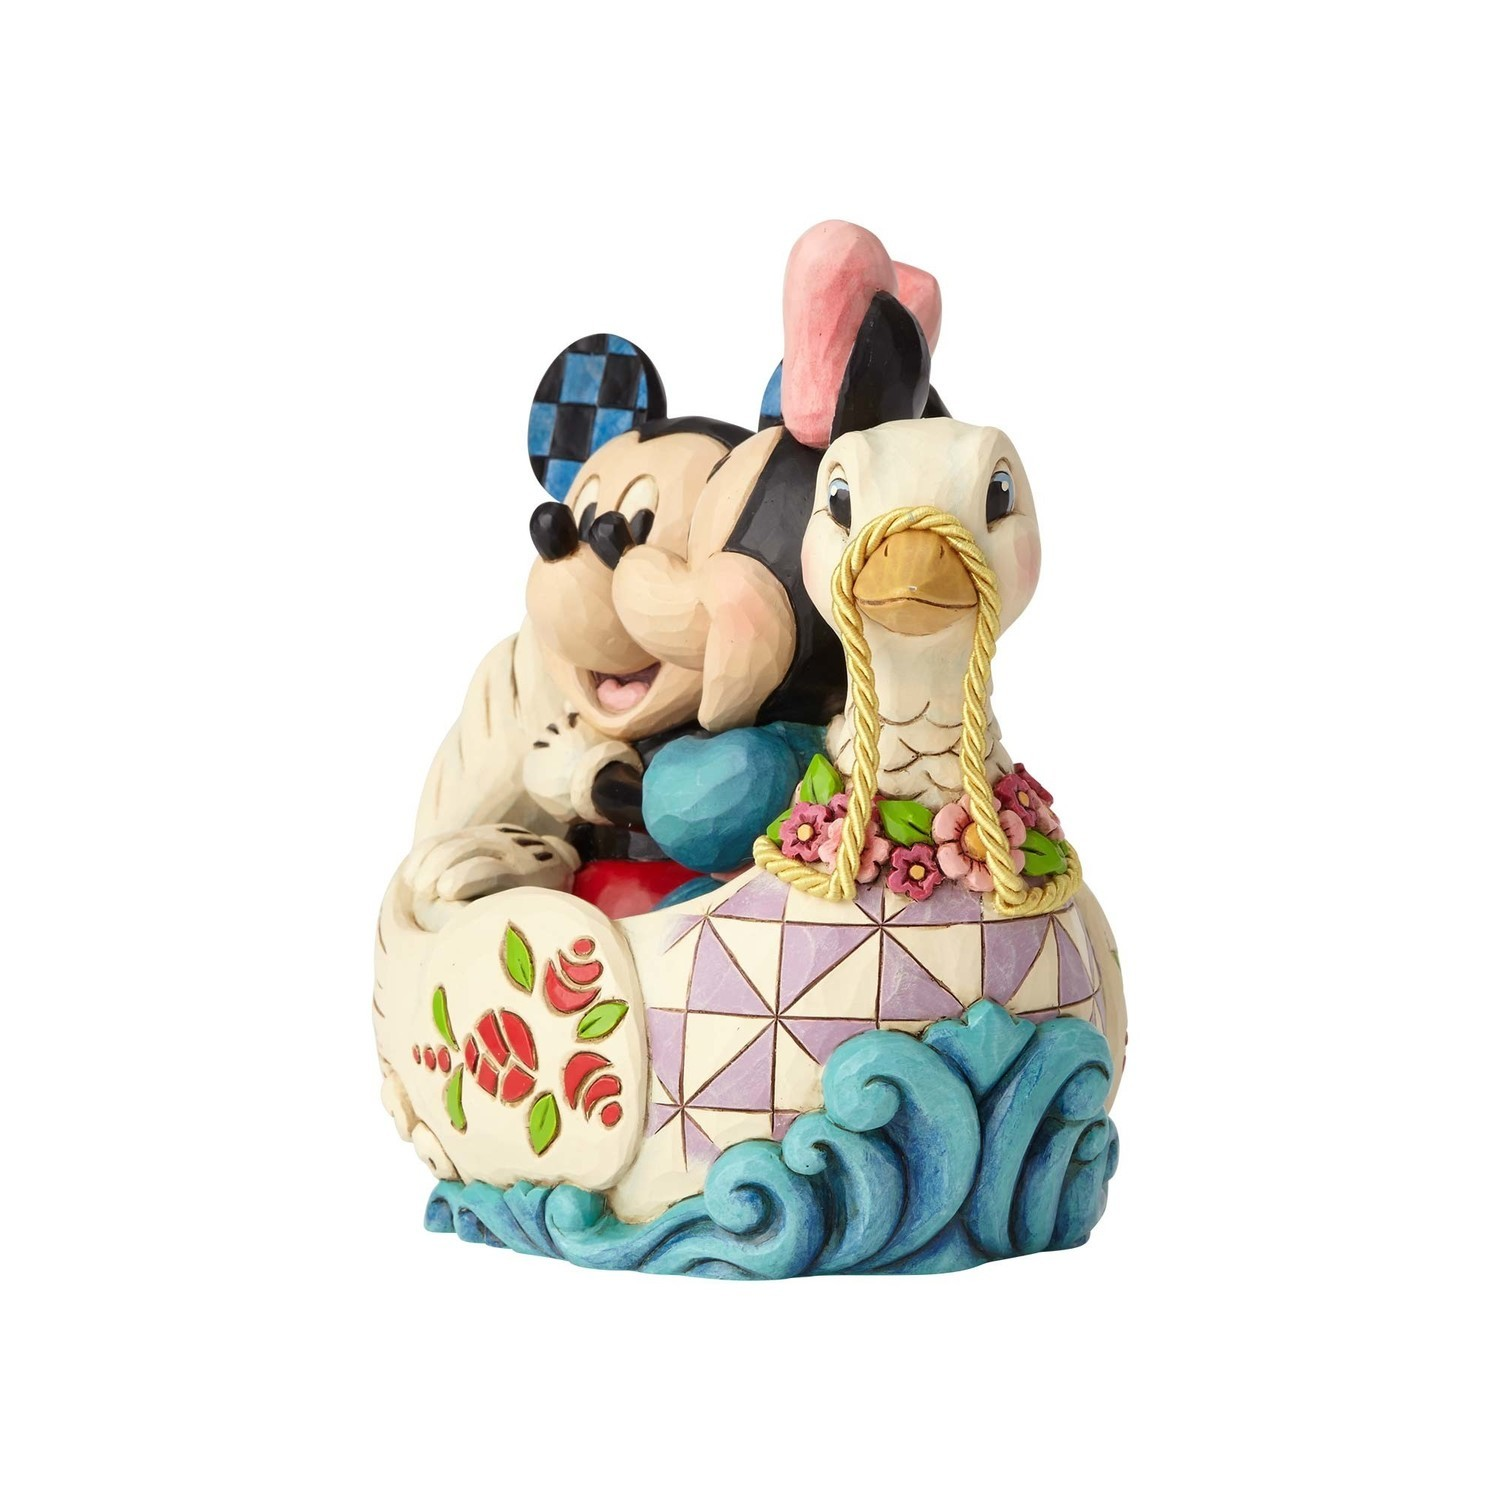 Lovebirds - Mickey and Minnie in Swan - Disney Characters by Jim ...